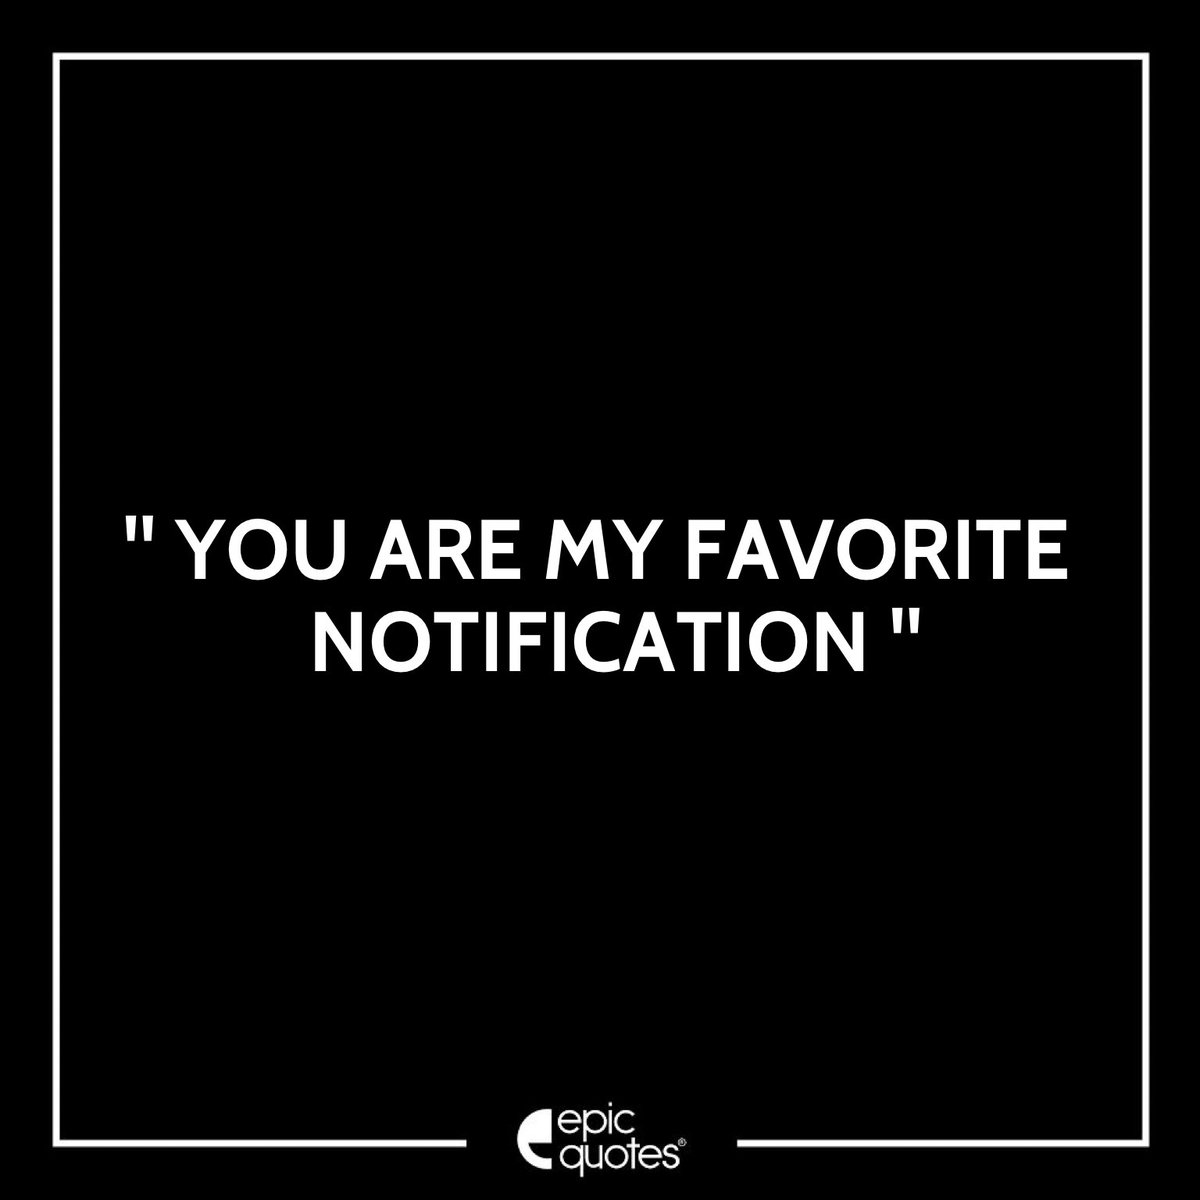 Epicquotesin On Twitter 2079 Mention Your Favorite Notification